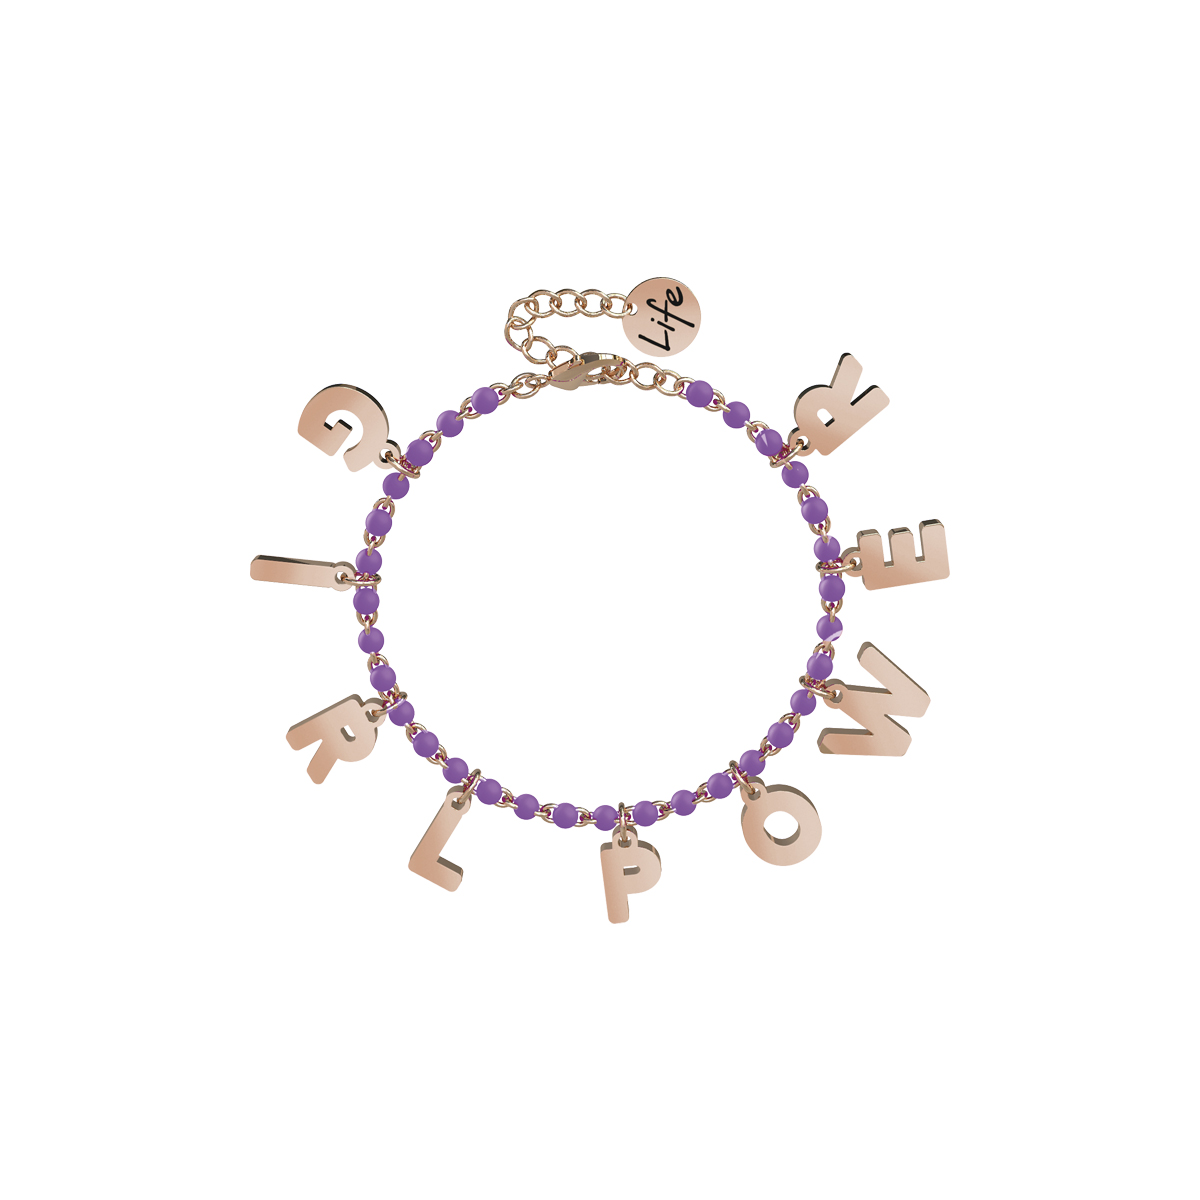 Bracciale Kidult in Acciaio e Smalti Girl Power Philosophy 731583